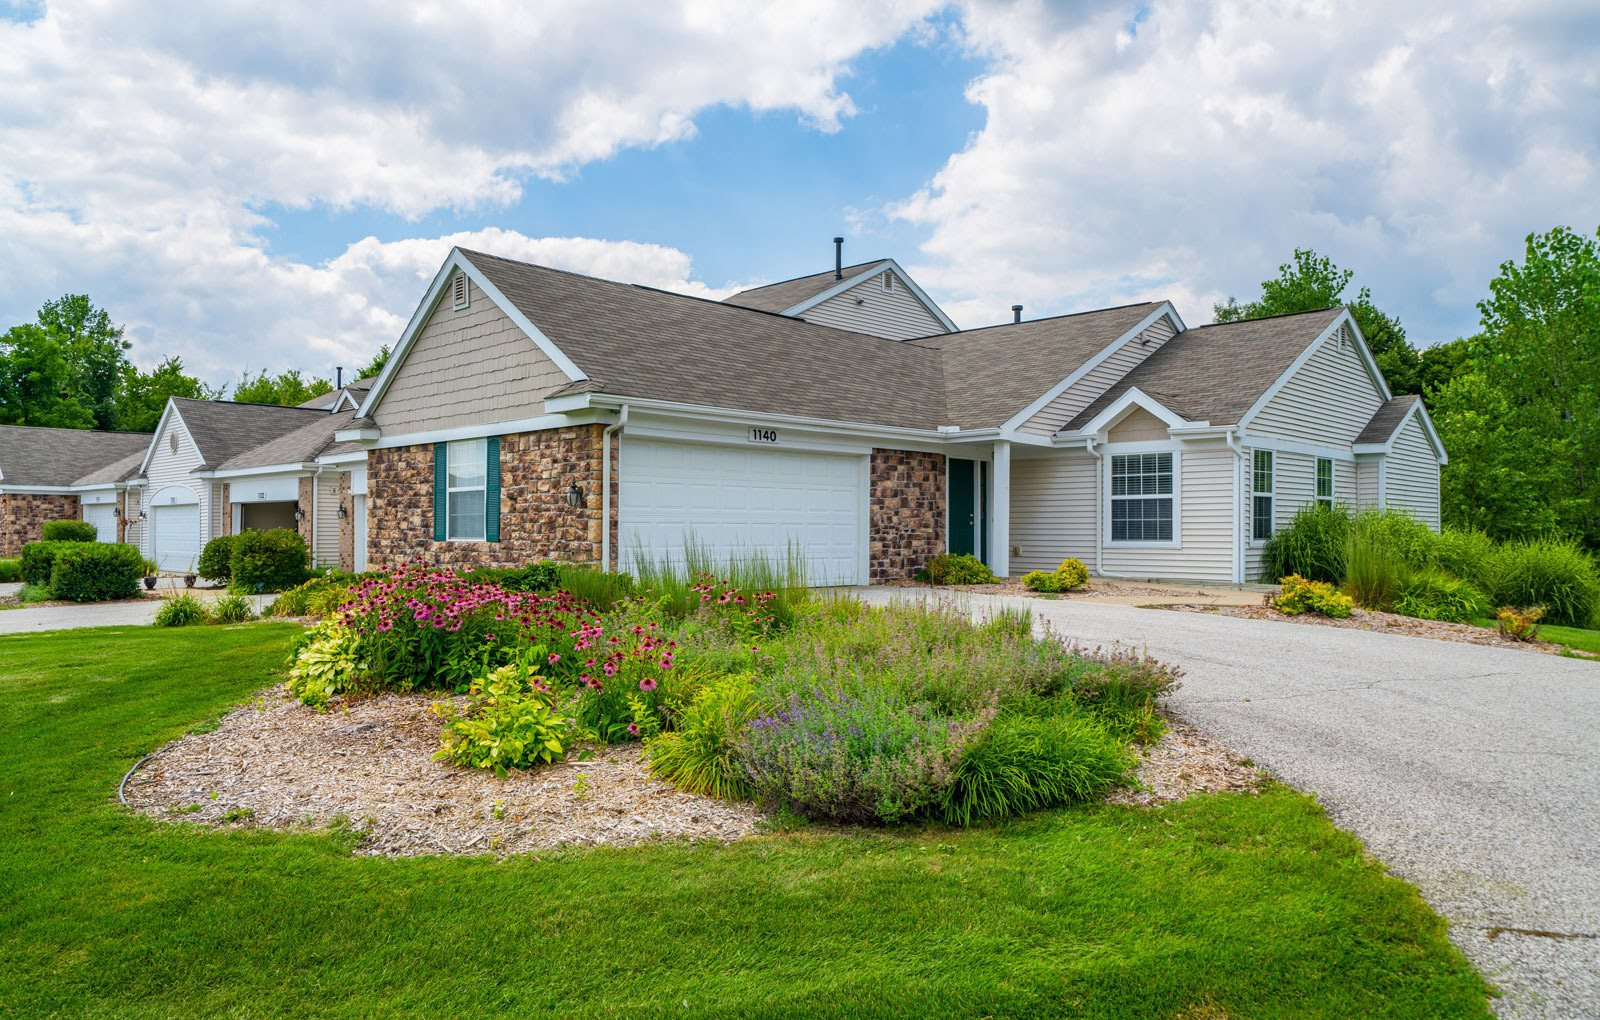 Exquisite Exterior at Autumn Lakes Apartments and Townhomes, Mishawaka, 46544